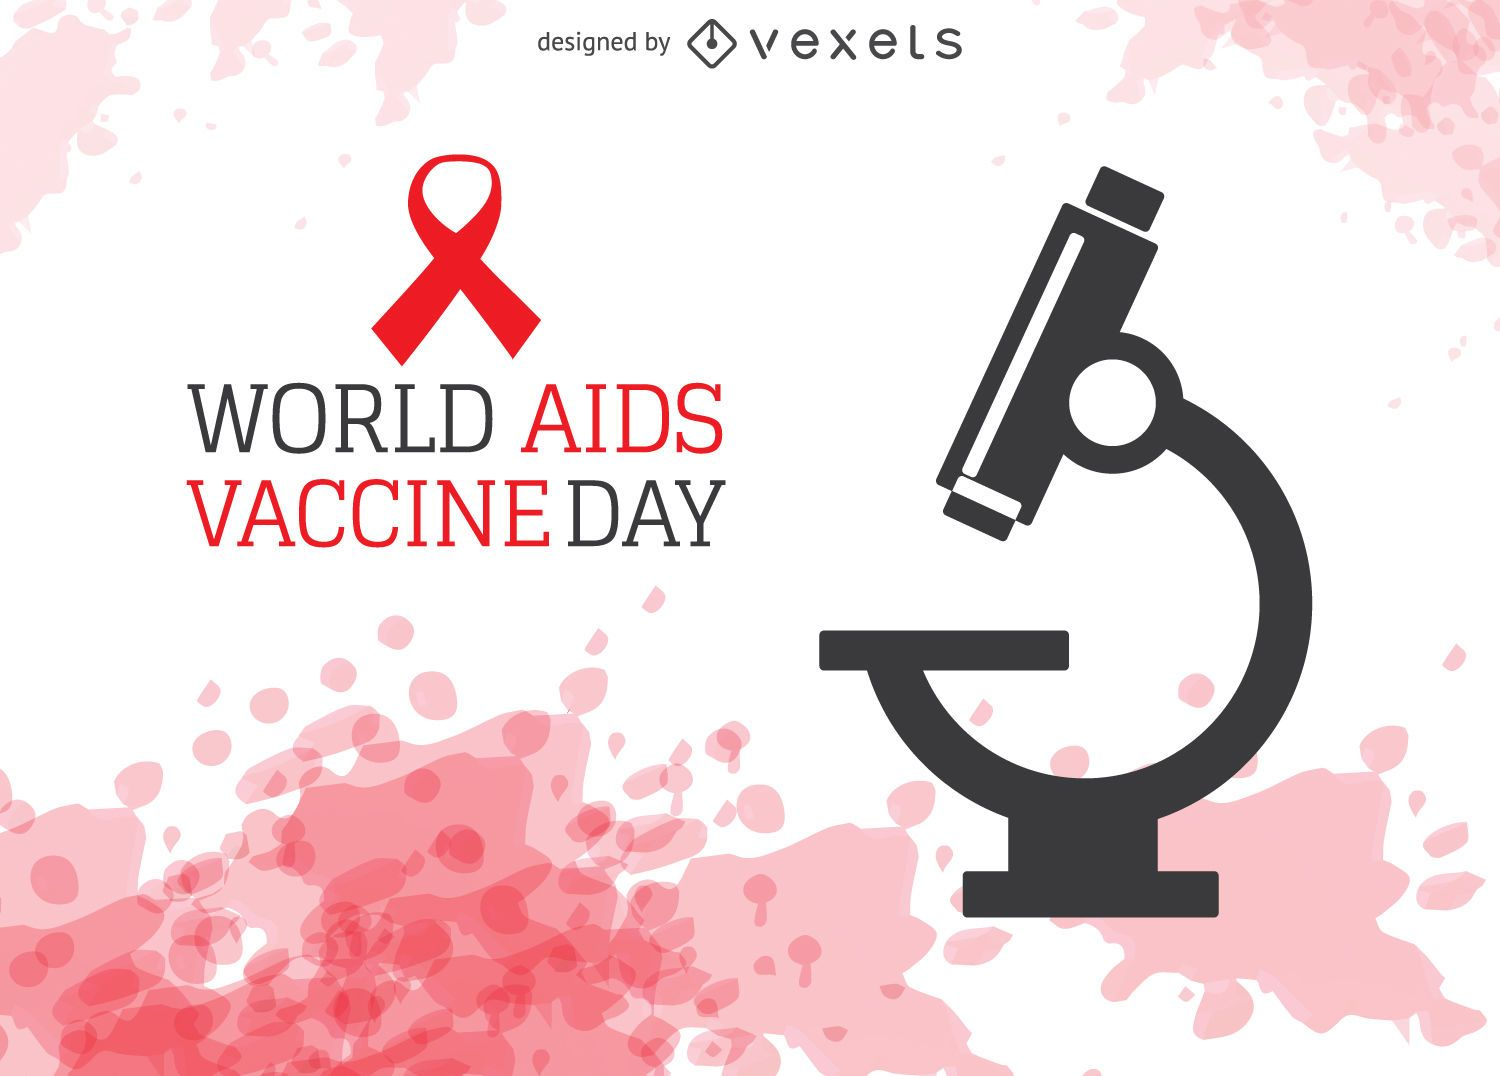 World AIDS Vaccine Day with microscope